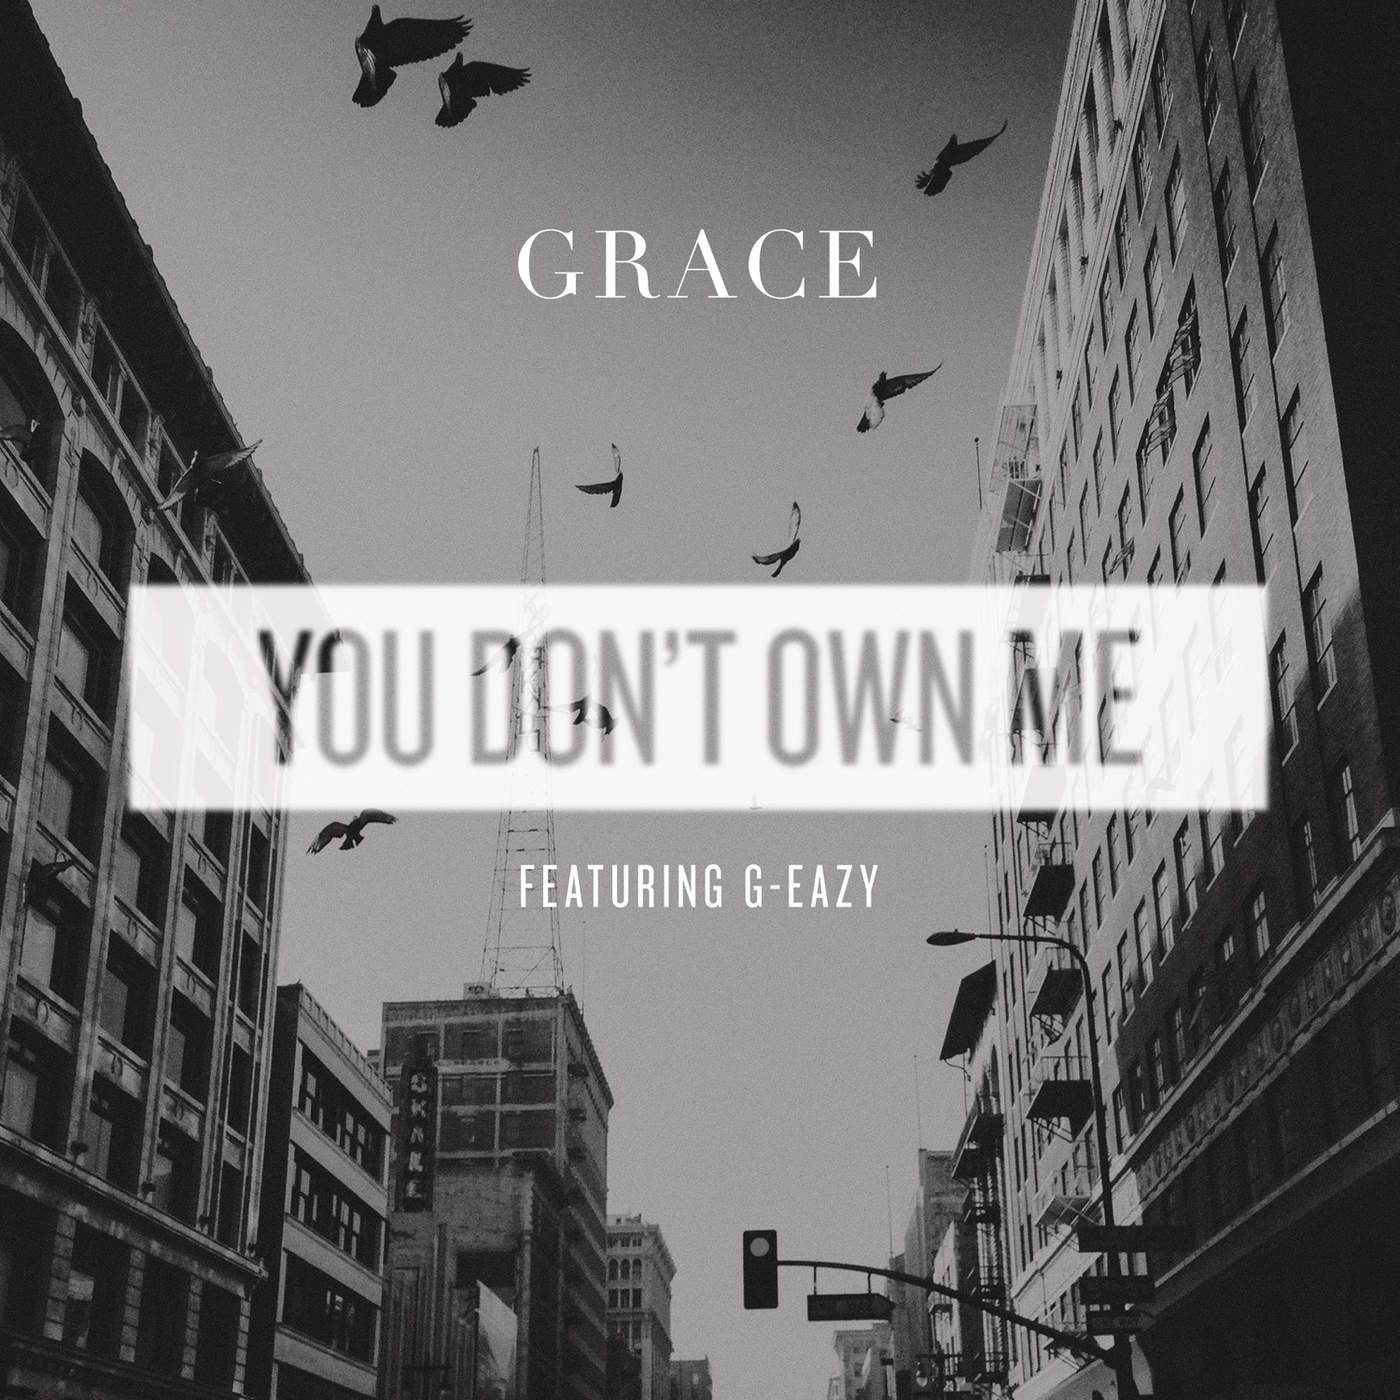 Grace - You Don't Own Me (feat. G-Eazy) - Single Cover